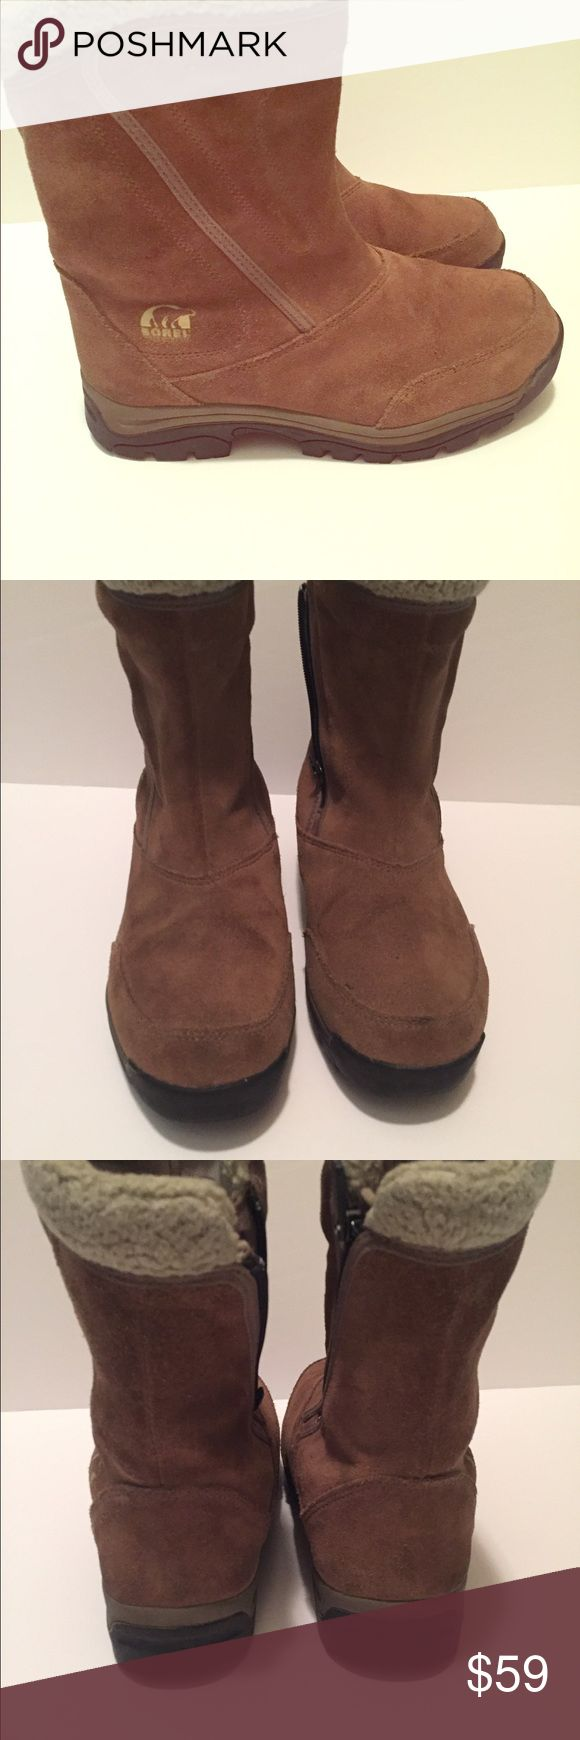 Sorel waterproof insulated boots 8.5 Women Sorel water fall insulated half calf zipper boot. Like new. Excellent condition. Size 8.5 Sorel Shoes Winter & Rain Boots